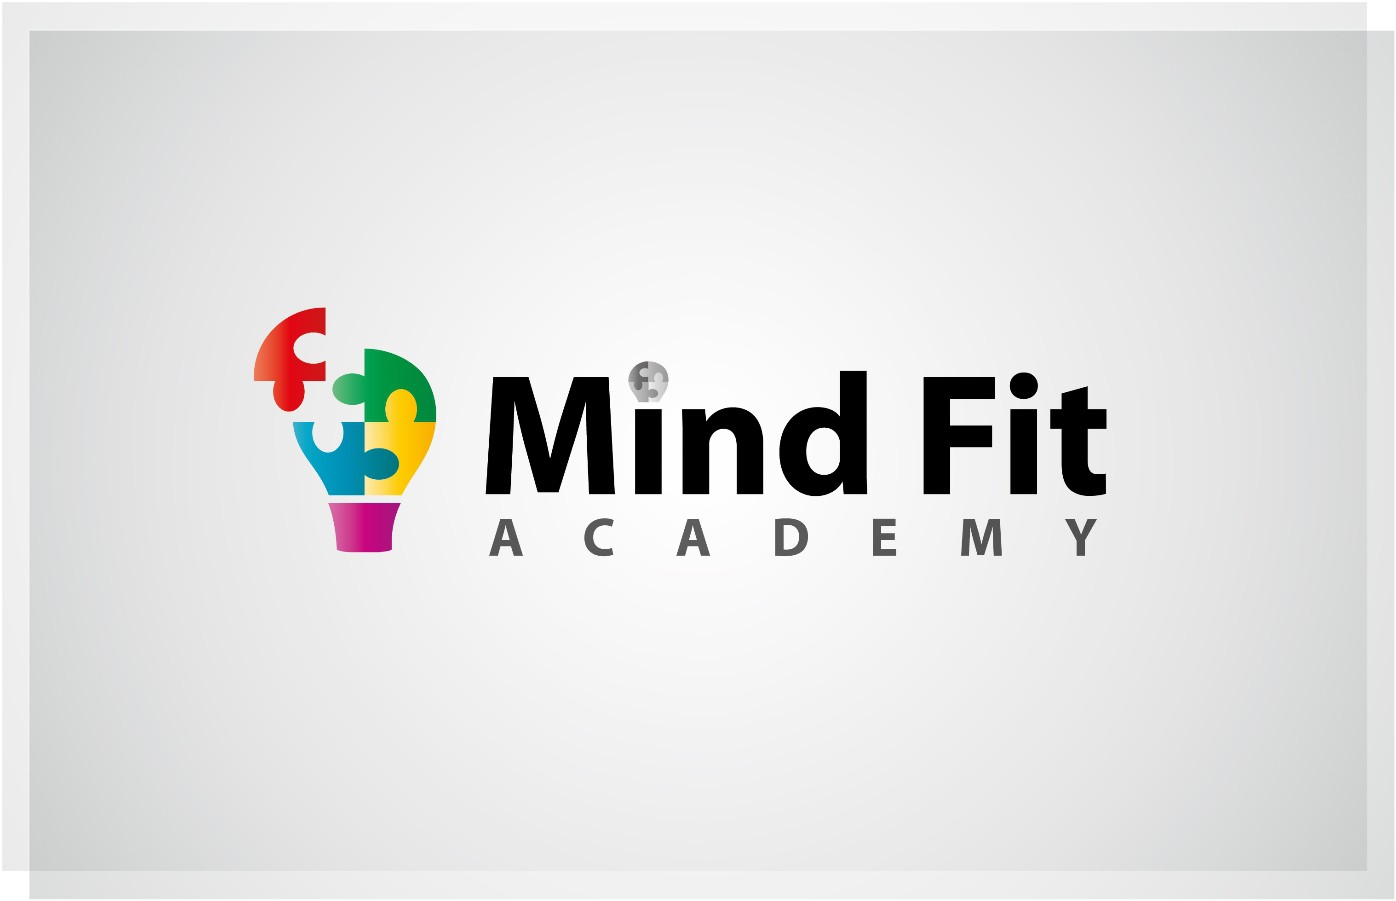 Help Mind Fit Academy with a new logo